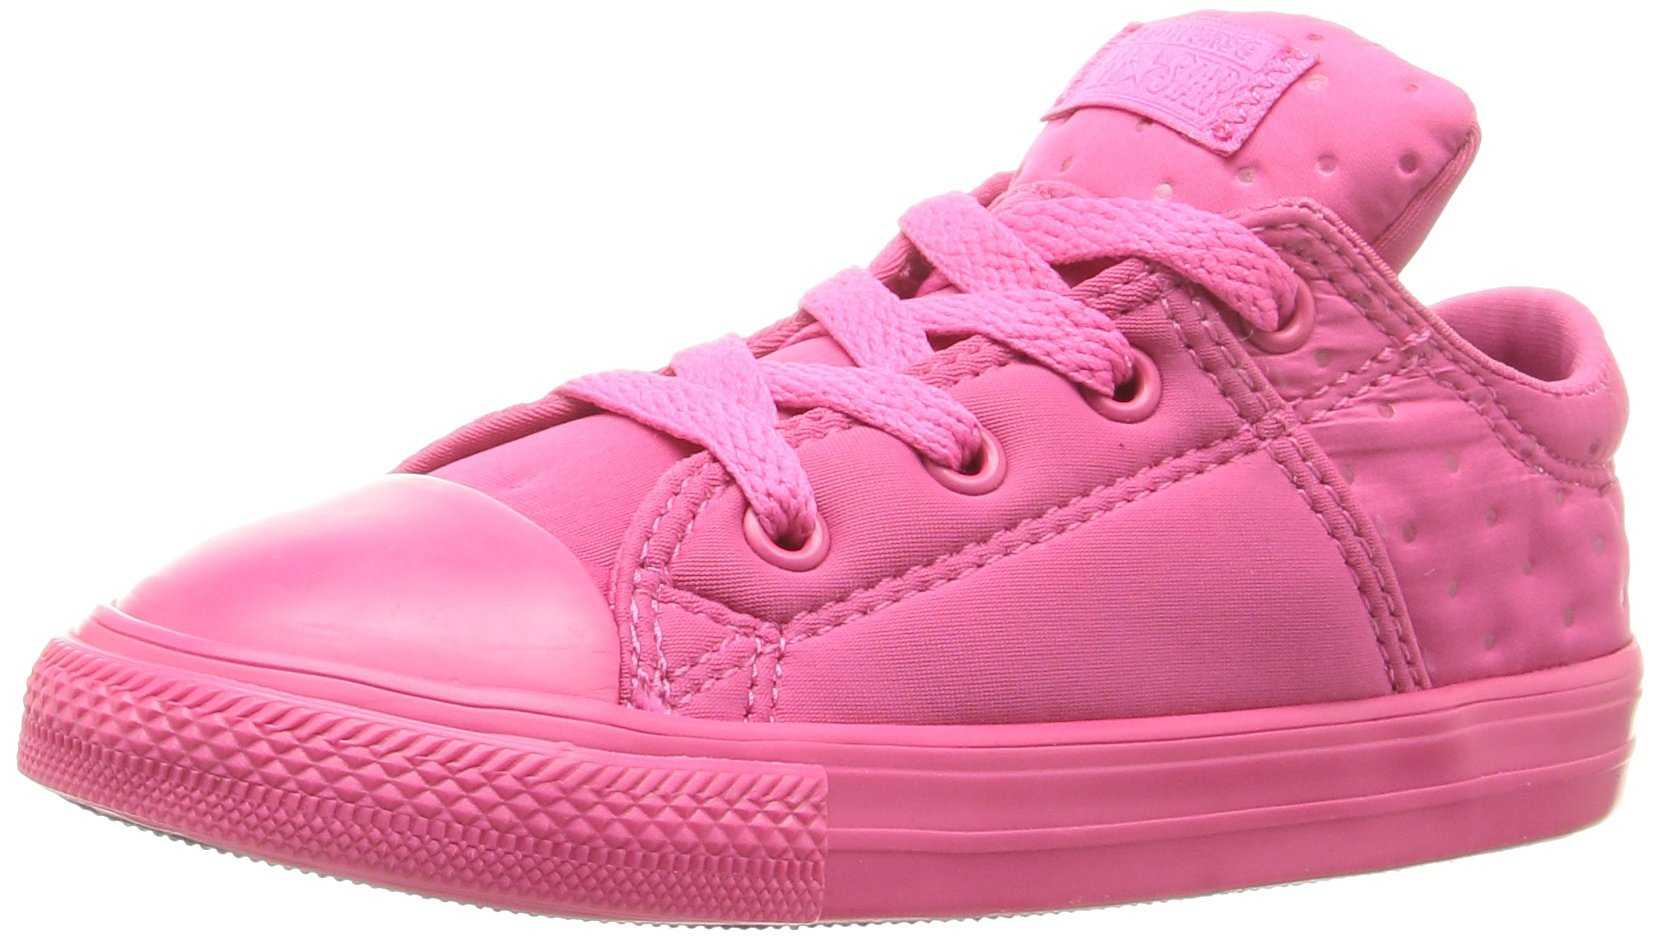 fdb8d5580c6360 Galleon - Converse Kids Girls  Chuck Taylor All Star Madison Ox (Infant  Toddler)